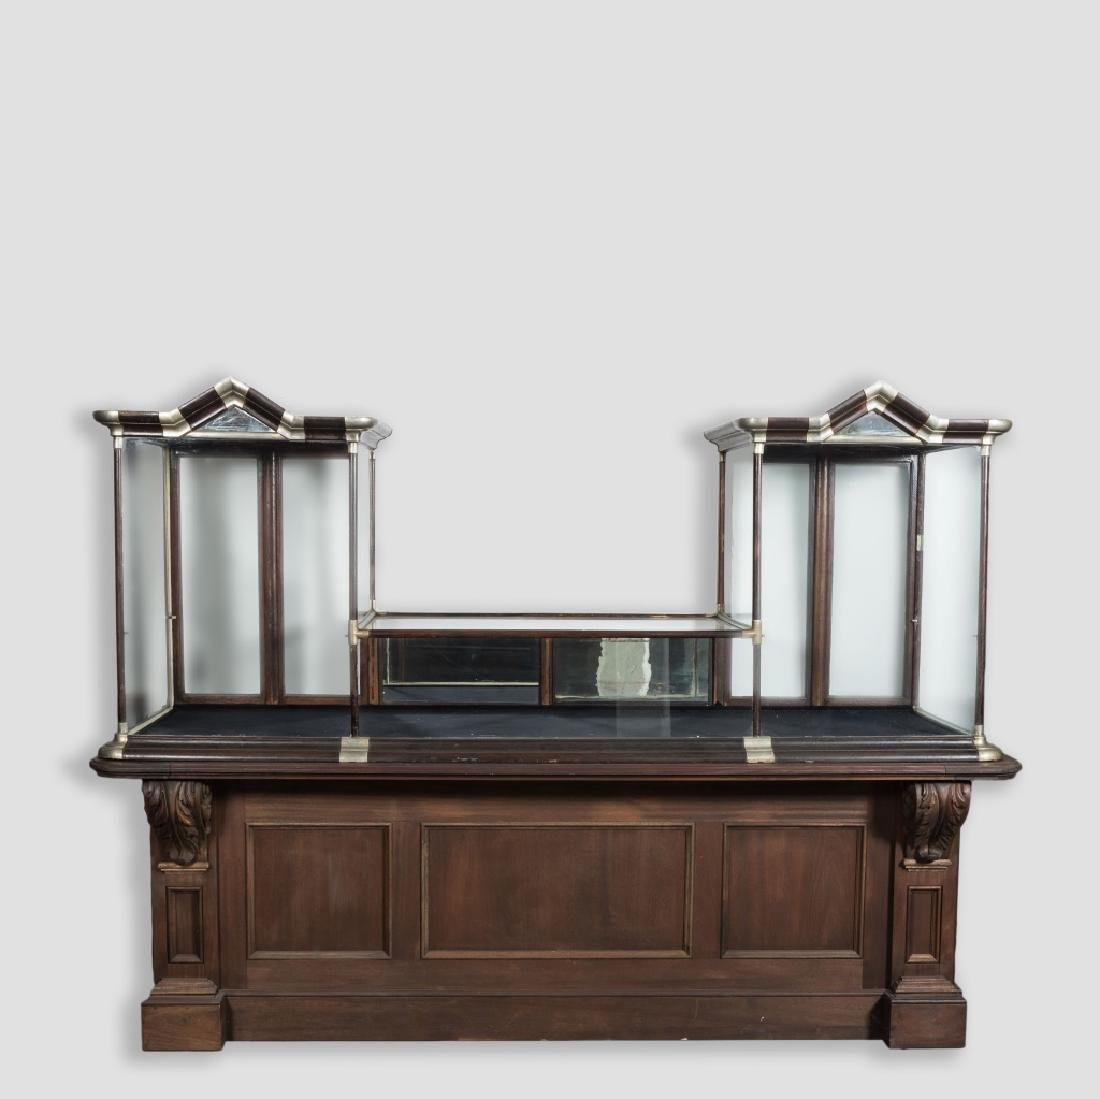 3 Section Victorian Counter Top Display Case